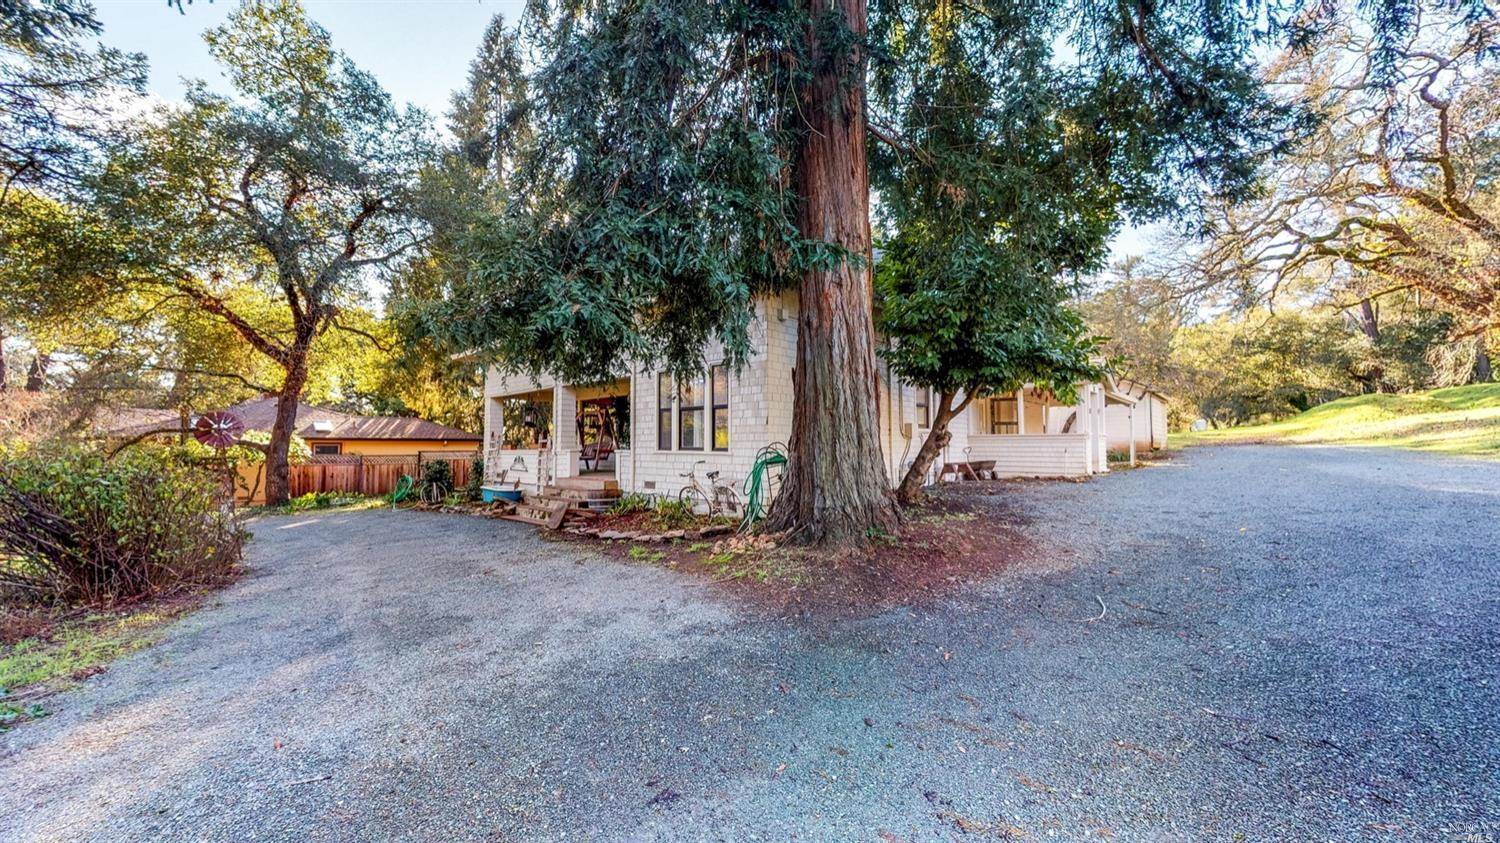 2375 Brush Creek Road, Santa Rosa, CA 95404